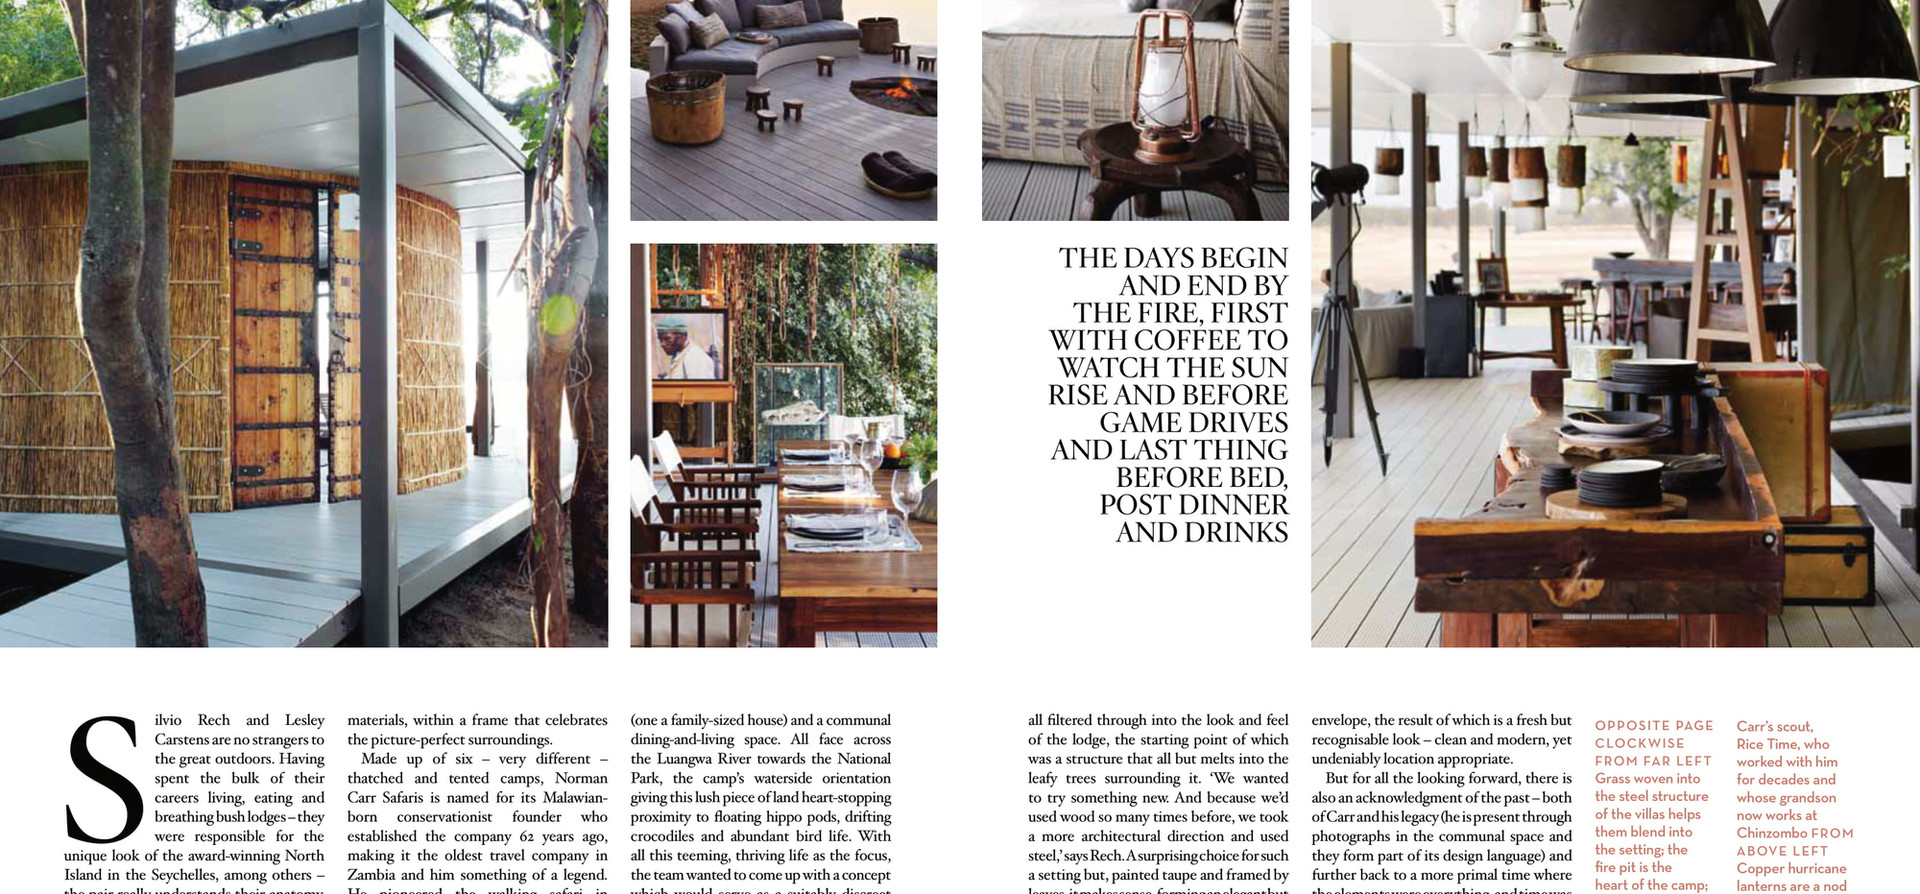 House&Garden - Chizombo - September 2013